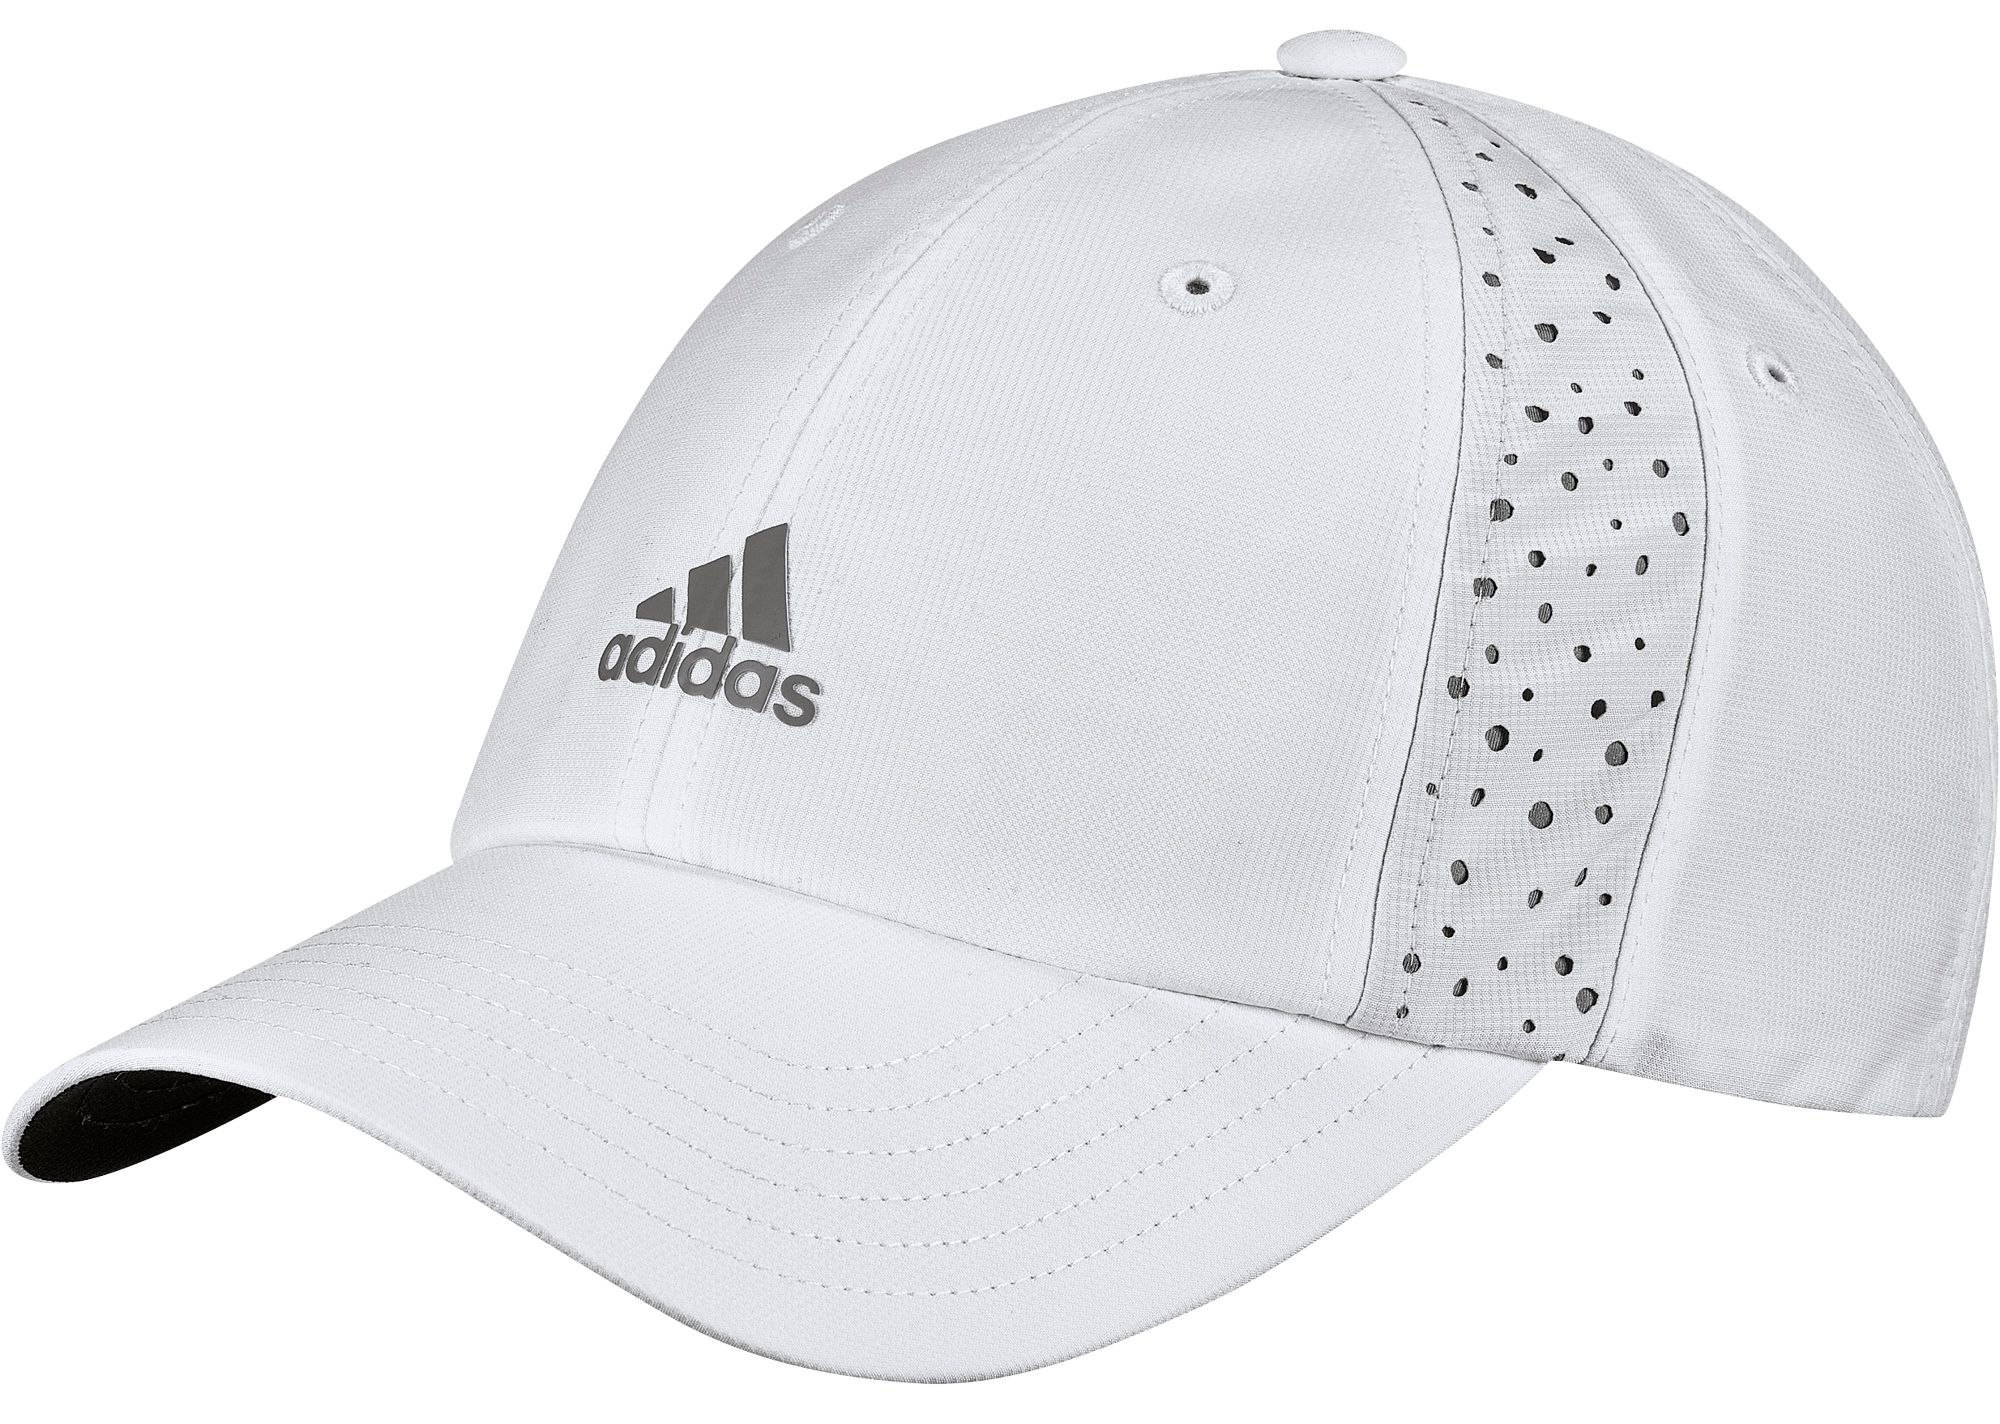 adidas Women's 2020 Performance Perforated Golf Hat, White